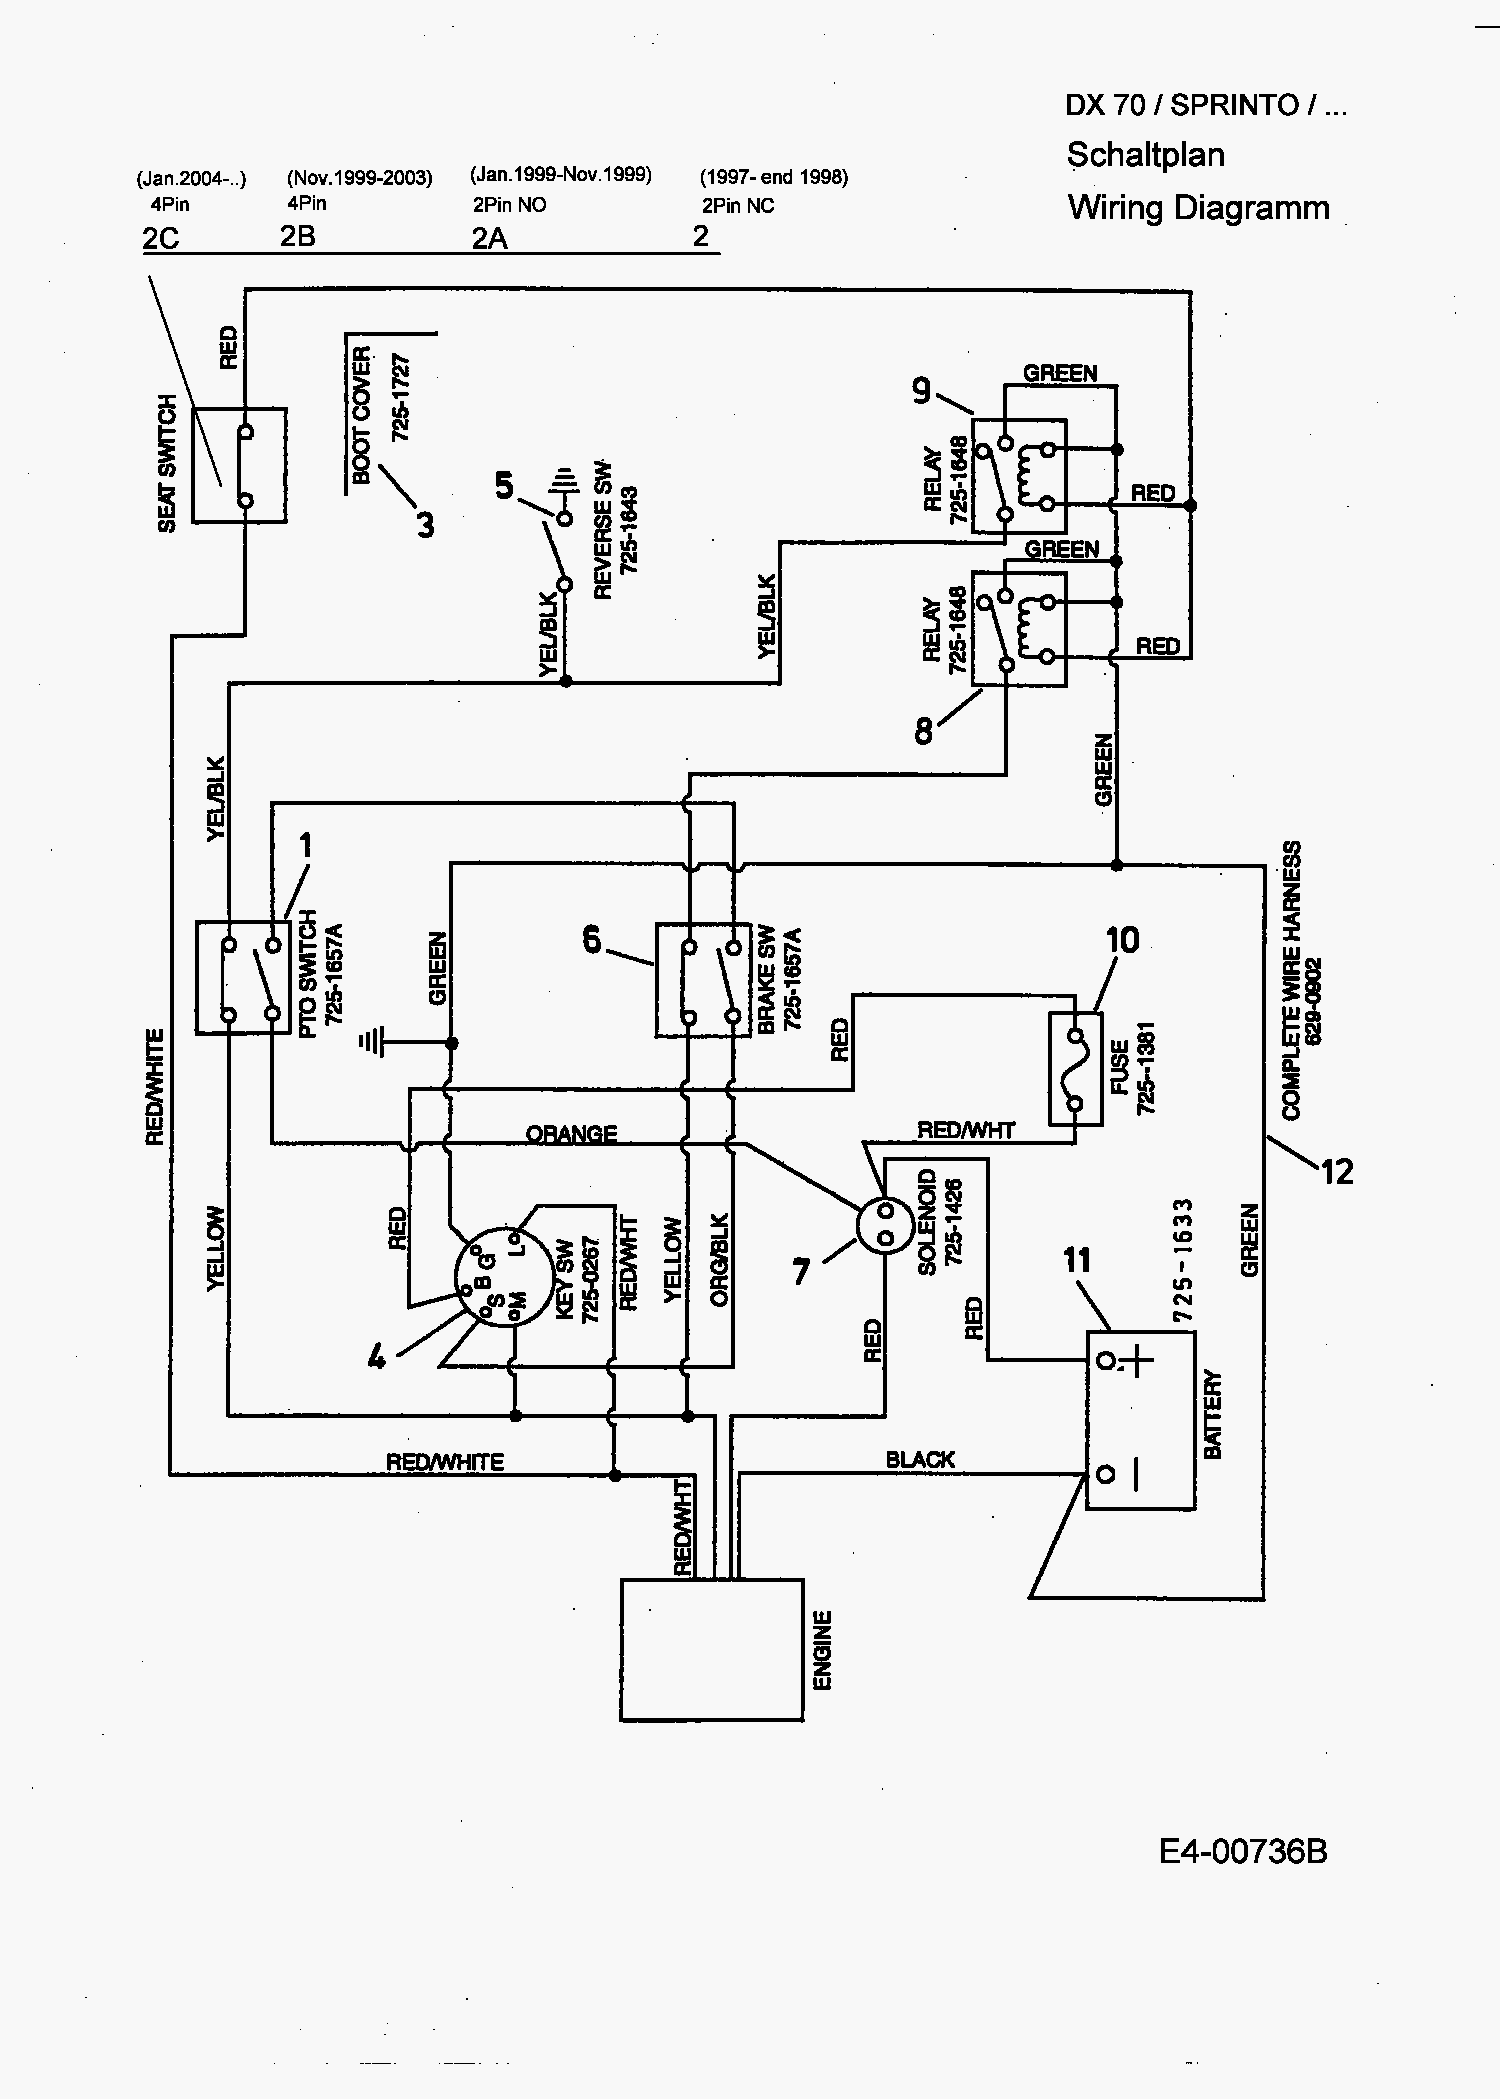 small resolution of wiring diagram husqvarna rz 5426 wiring diagrams konsult wiring diagram husqvarna rz 5426 wiring diagrams trigg